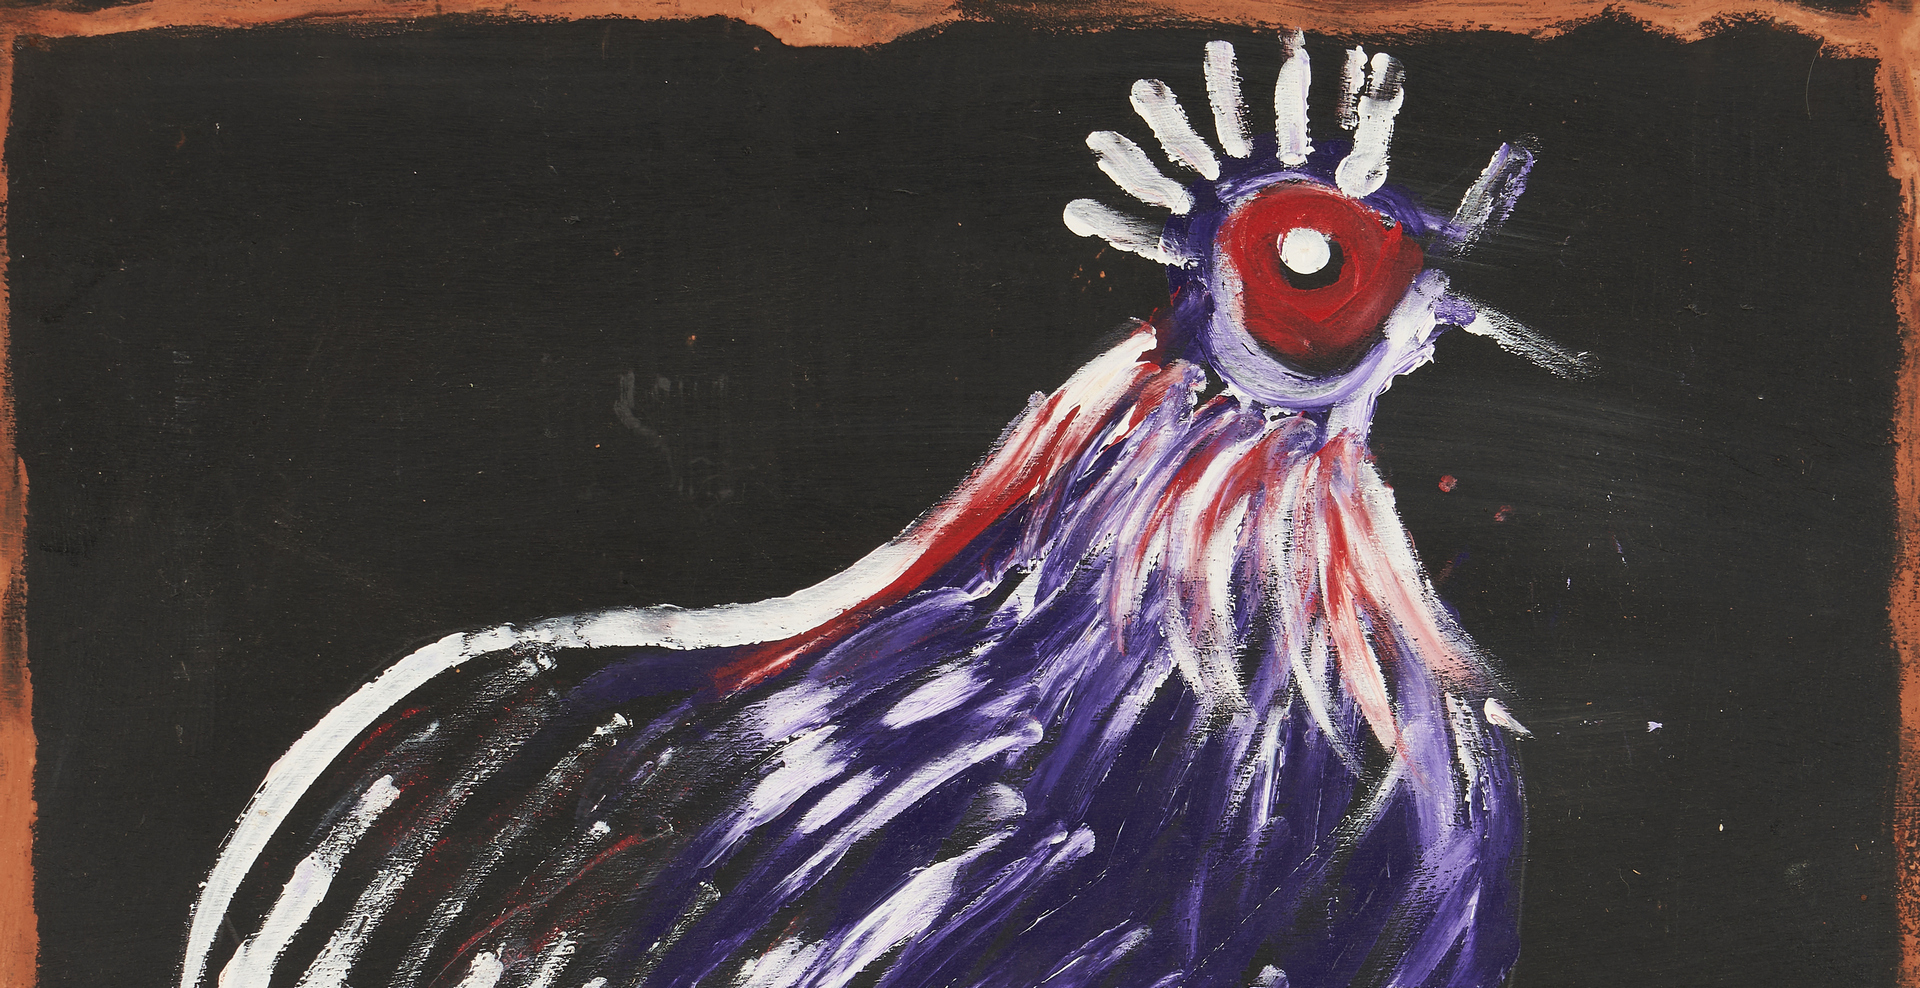 Lot 445: Jimmie Lee Sudduth Outsider Art Painting, Rooster